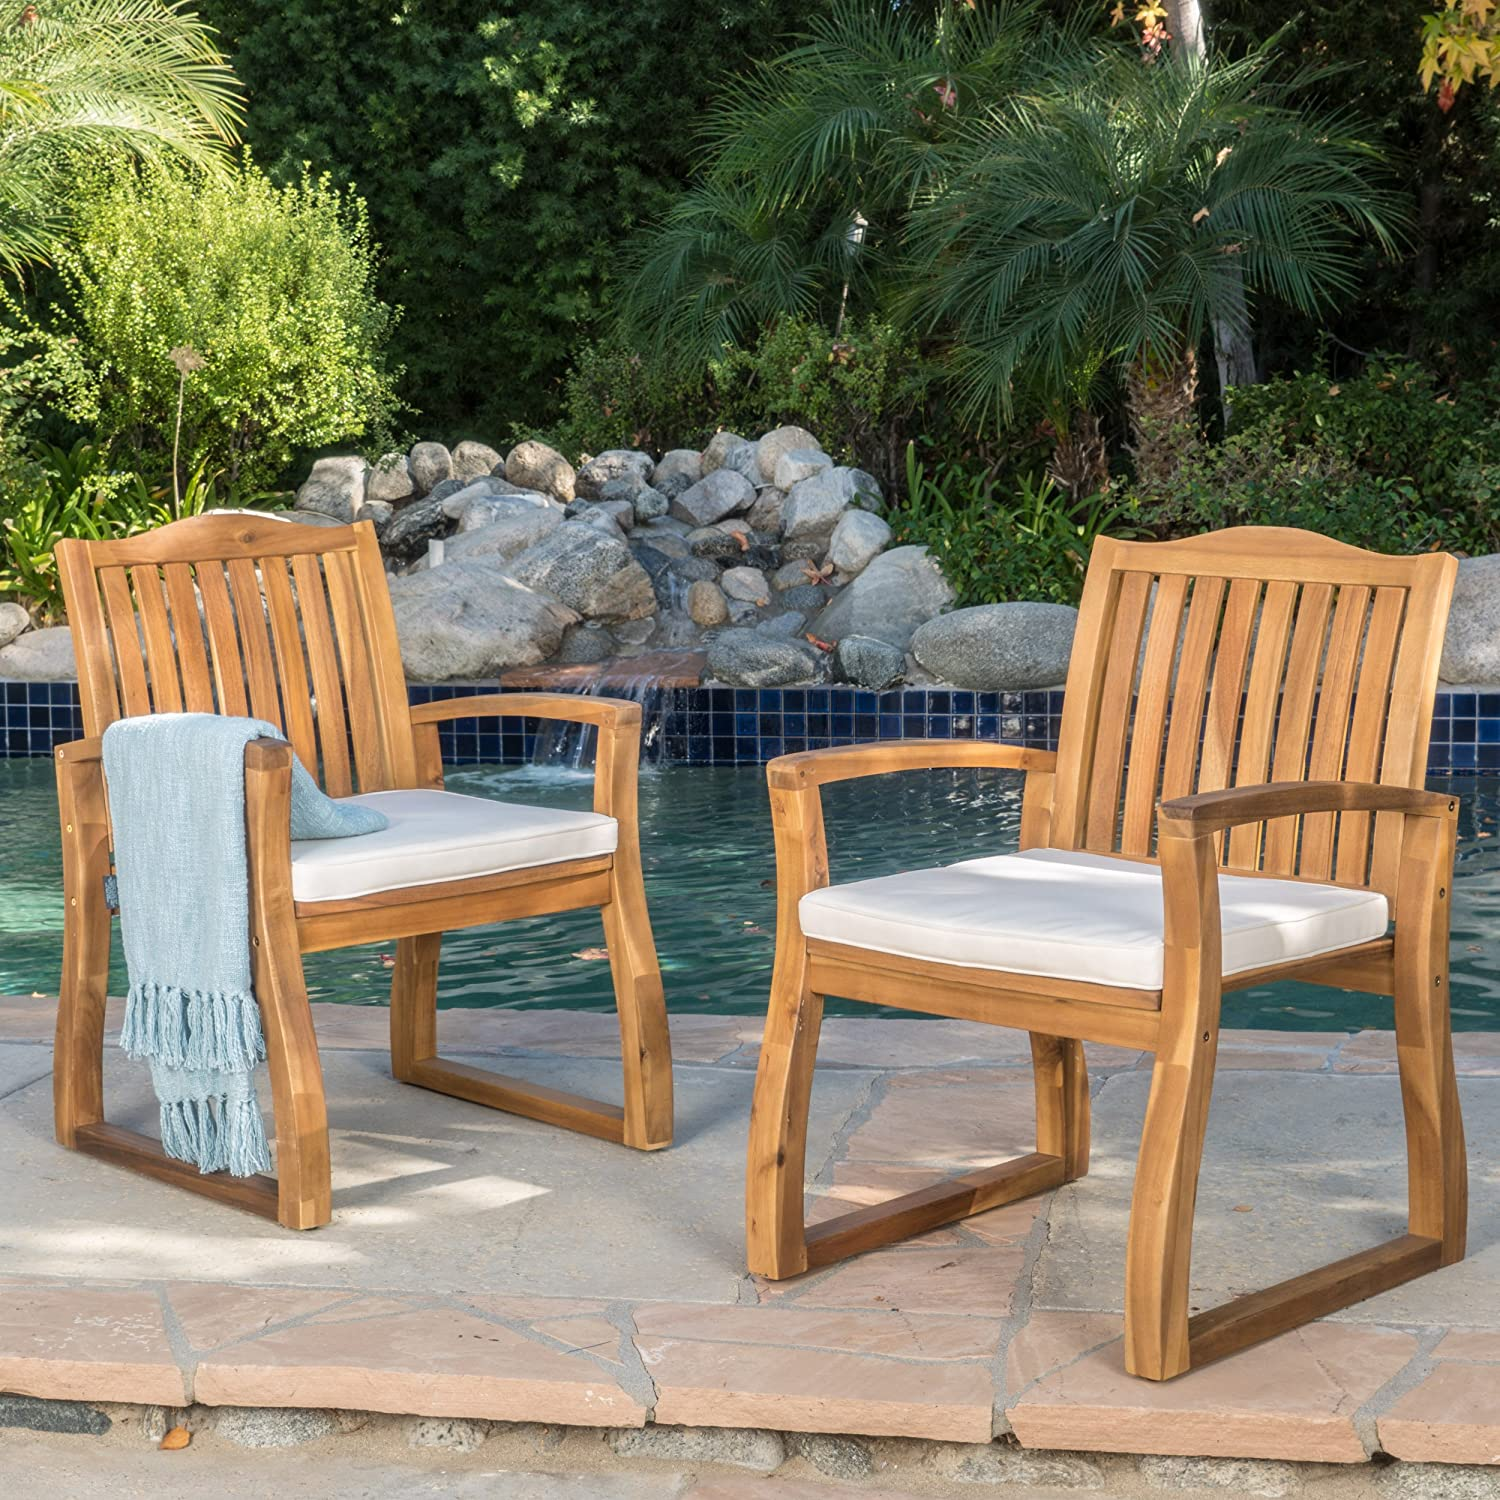 Amazon com christopher knight home tampa acacia wood outdoor dining chairs set of 2 perfect for patio with teak finish garden outdoor